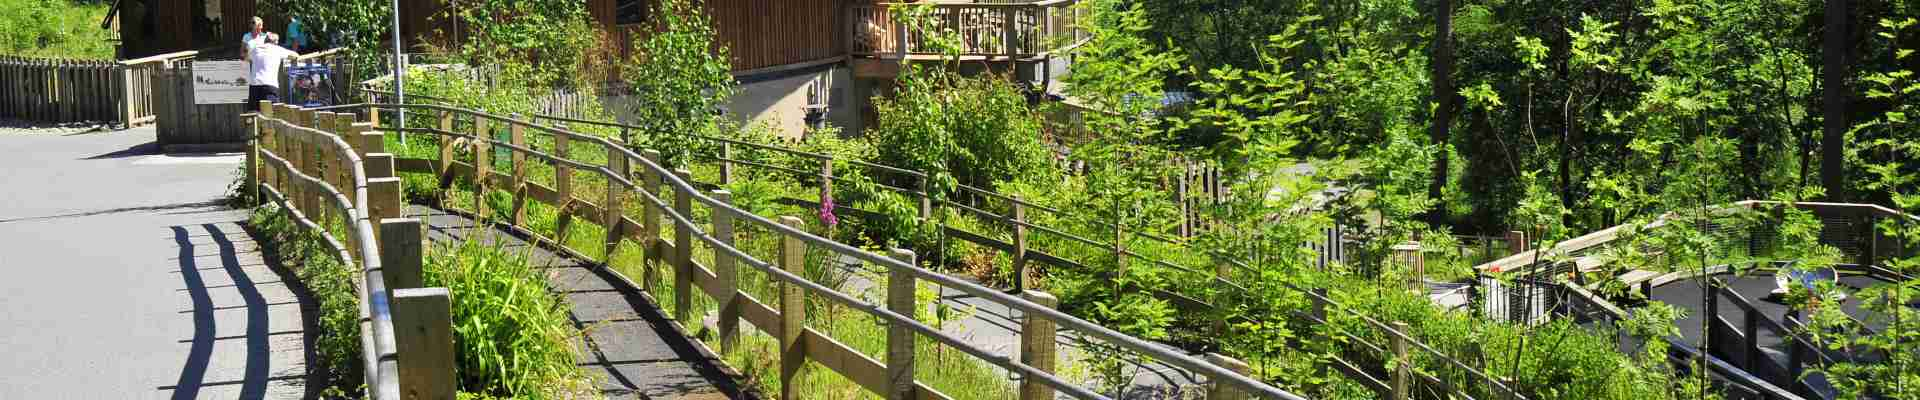 Coed y Brenin Forest Park Holiday Cottages